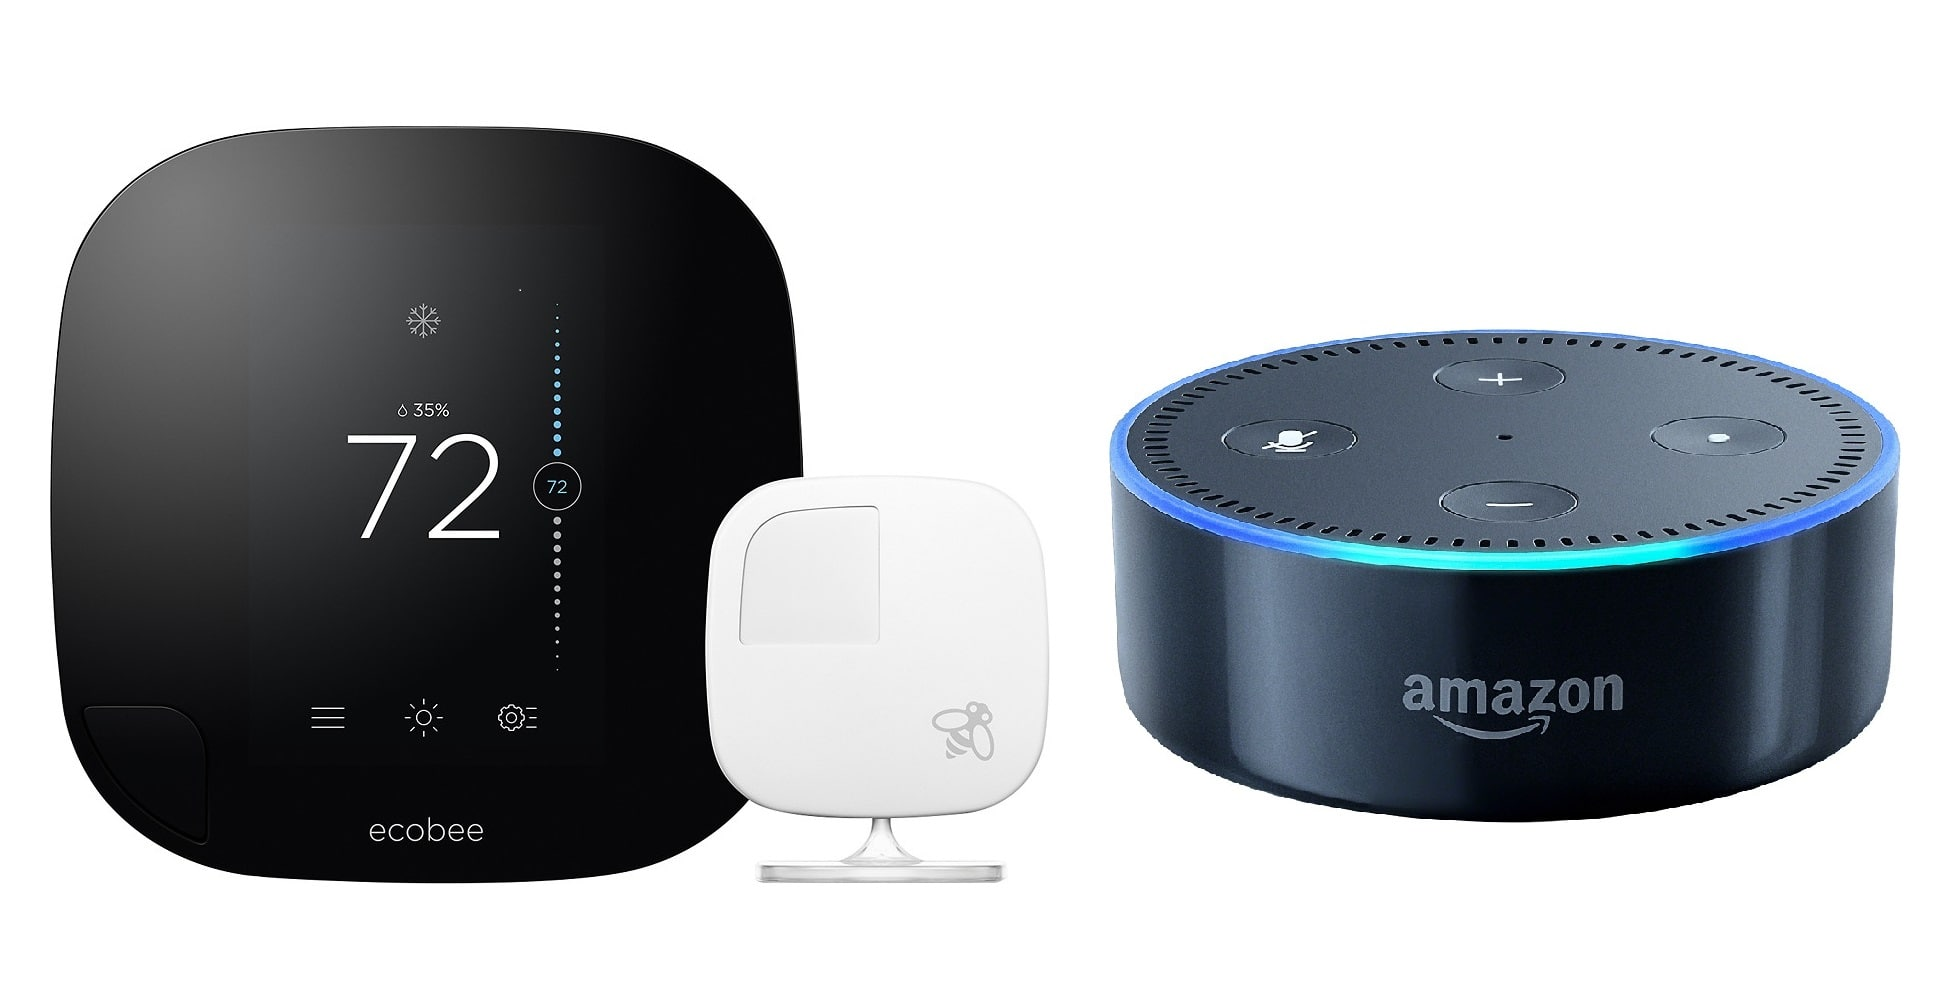 ecobee3 Touchscreen Wi-Fi Thermostat + Amazon Echo Dot (Pre-Order)  $200 + Free Shipping